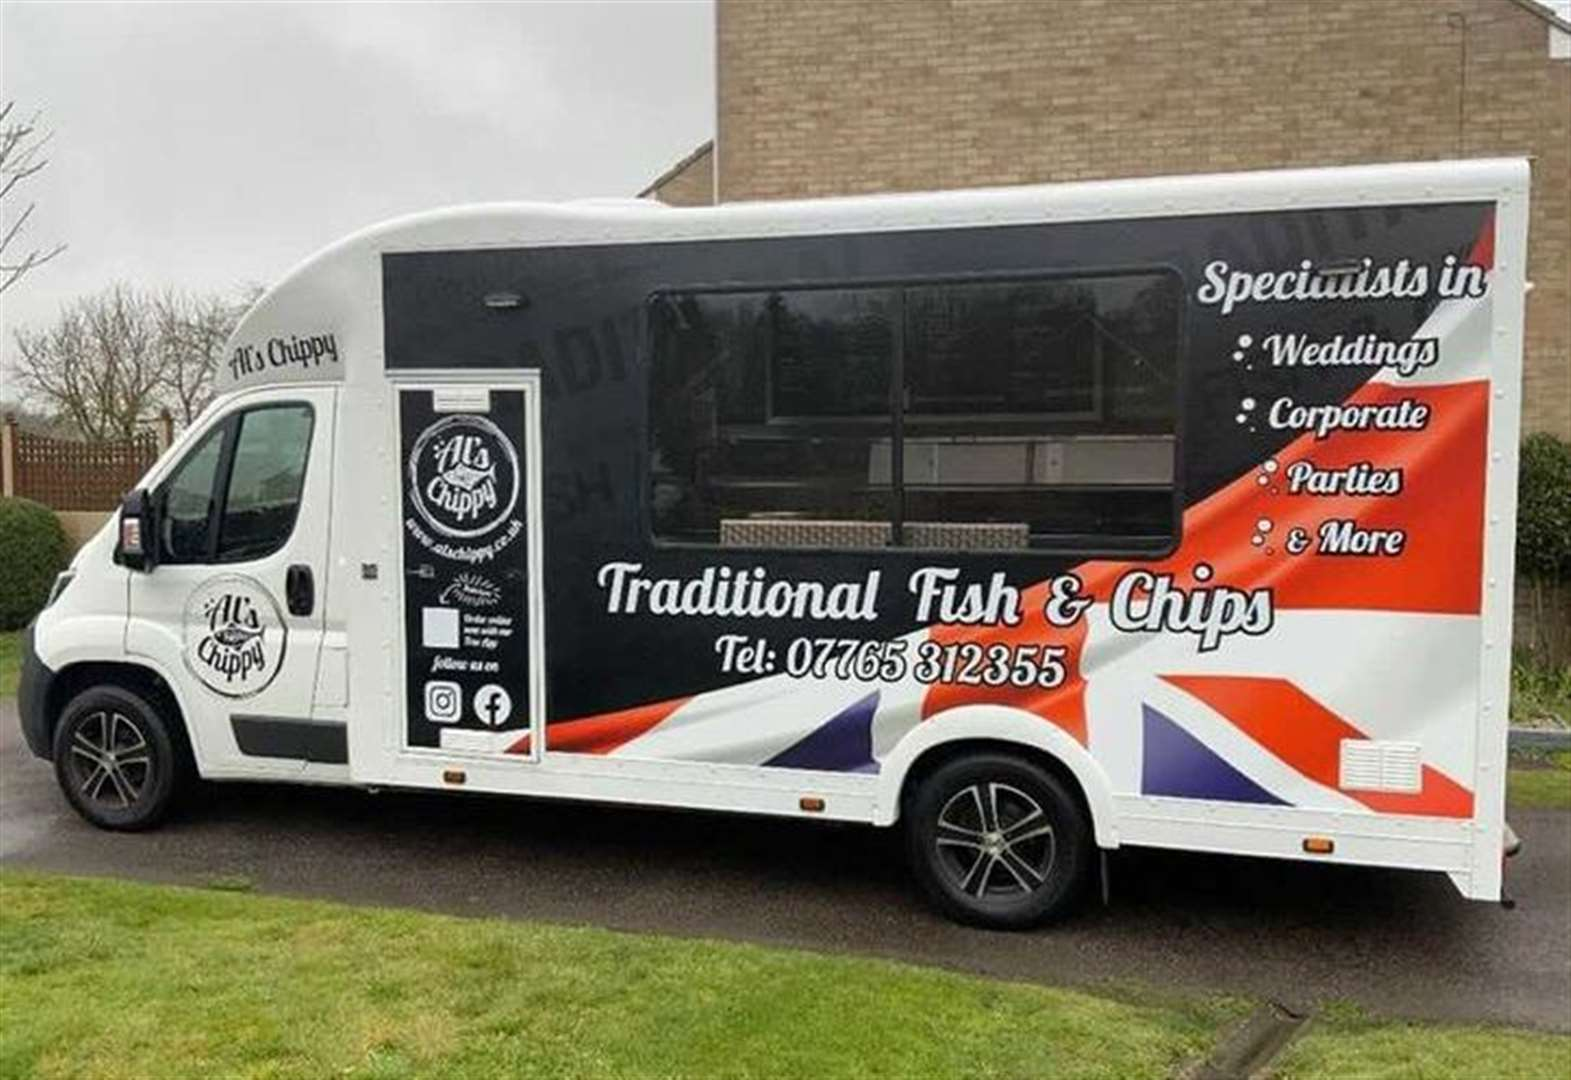 Mobile chippy coming to town